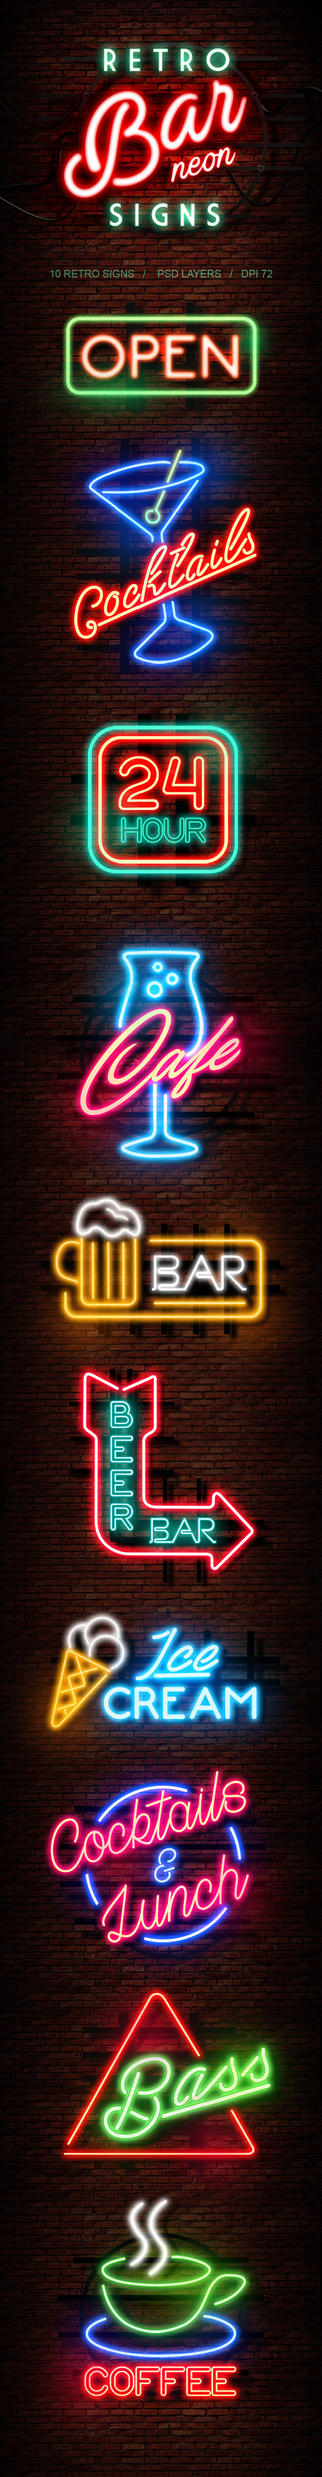 Retro Bar Neon Signs by Kluzya